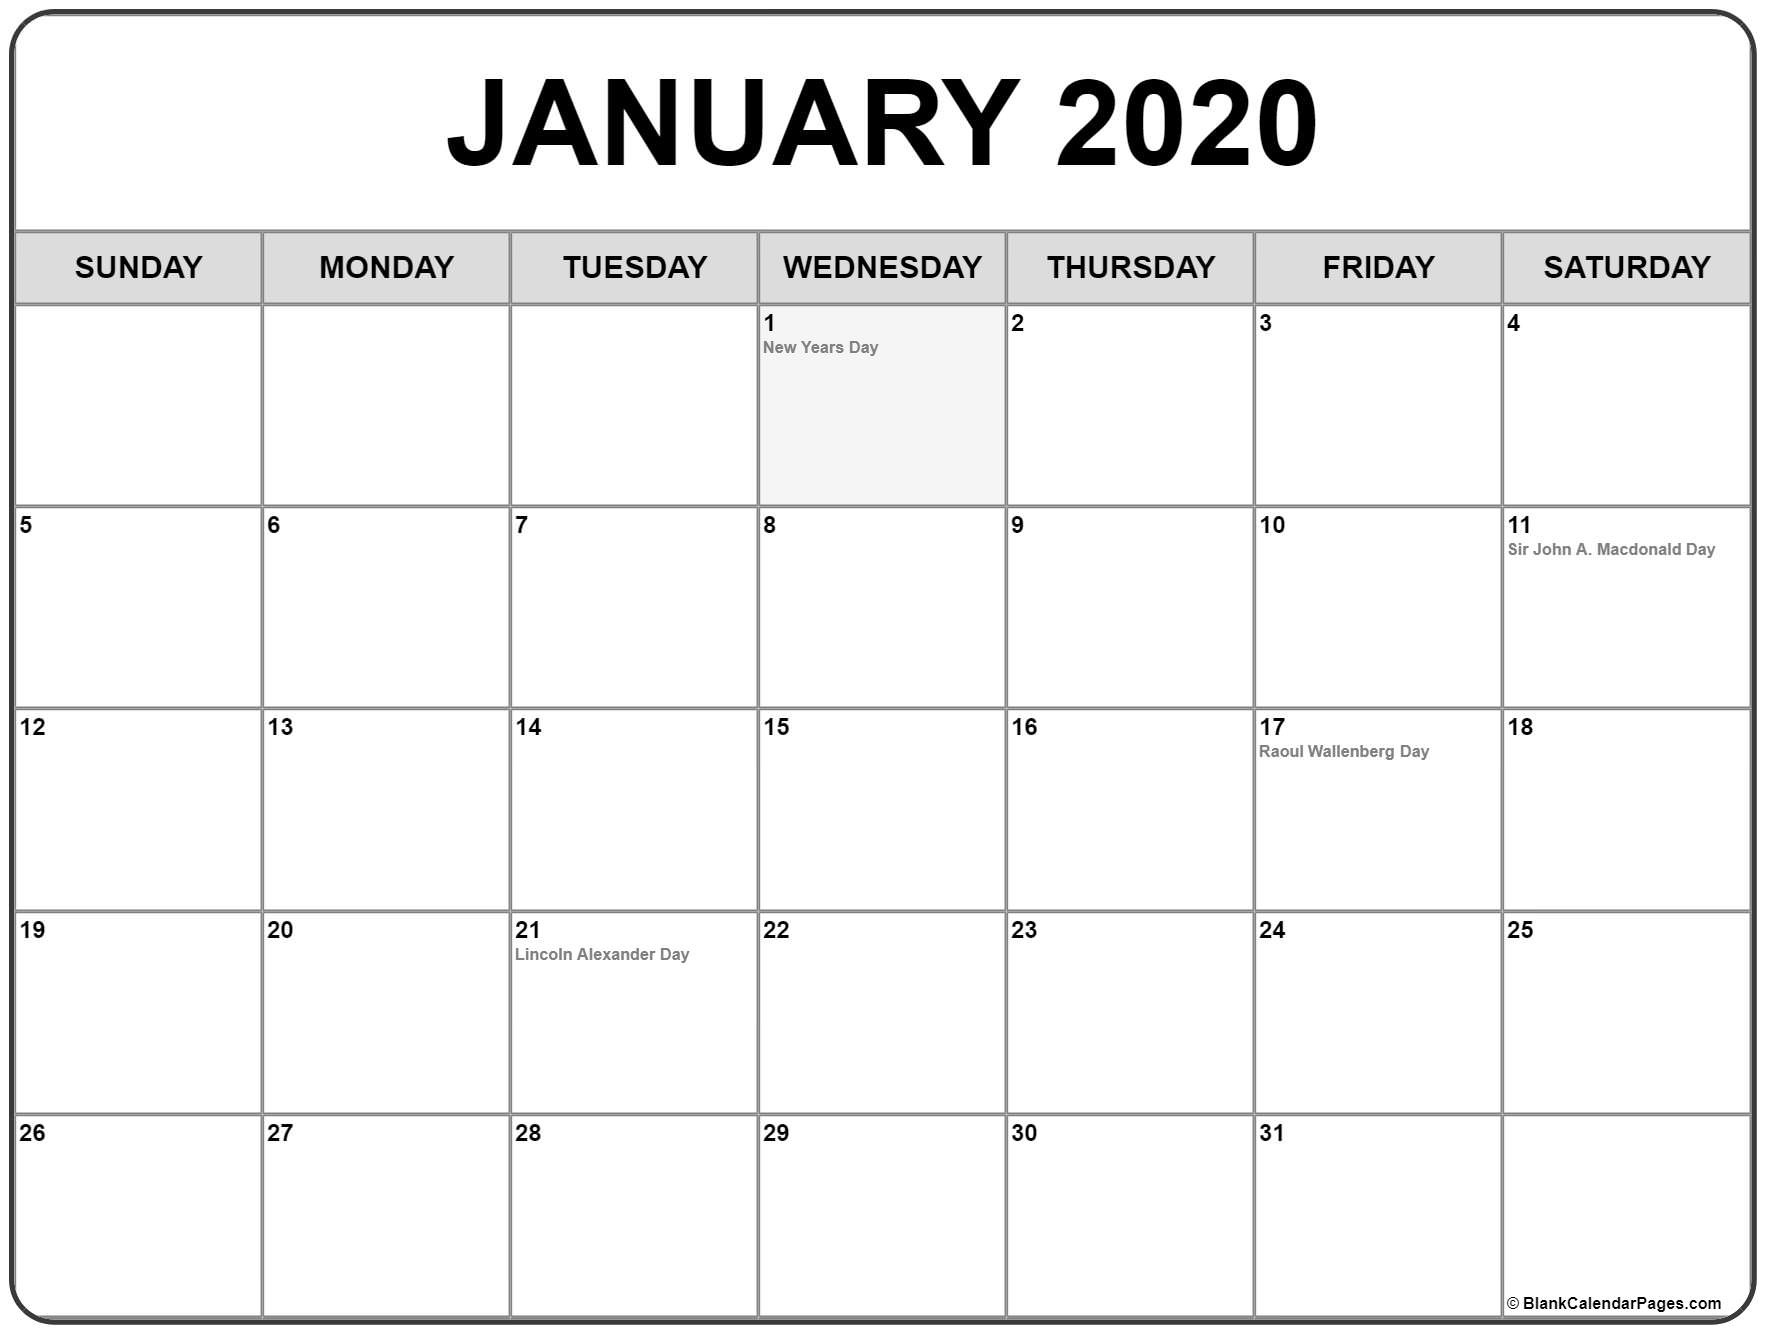 Collection Of January 2020 Calendars With Holidays-January 2020 Day Calendar